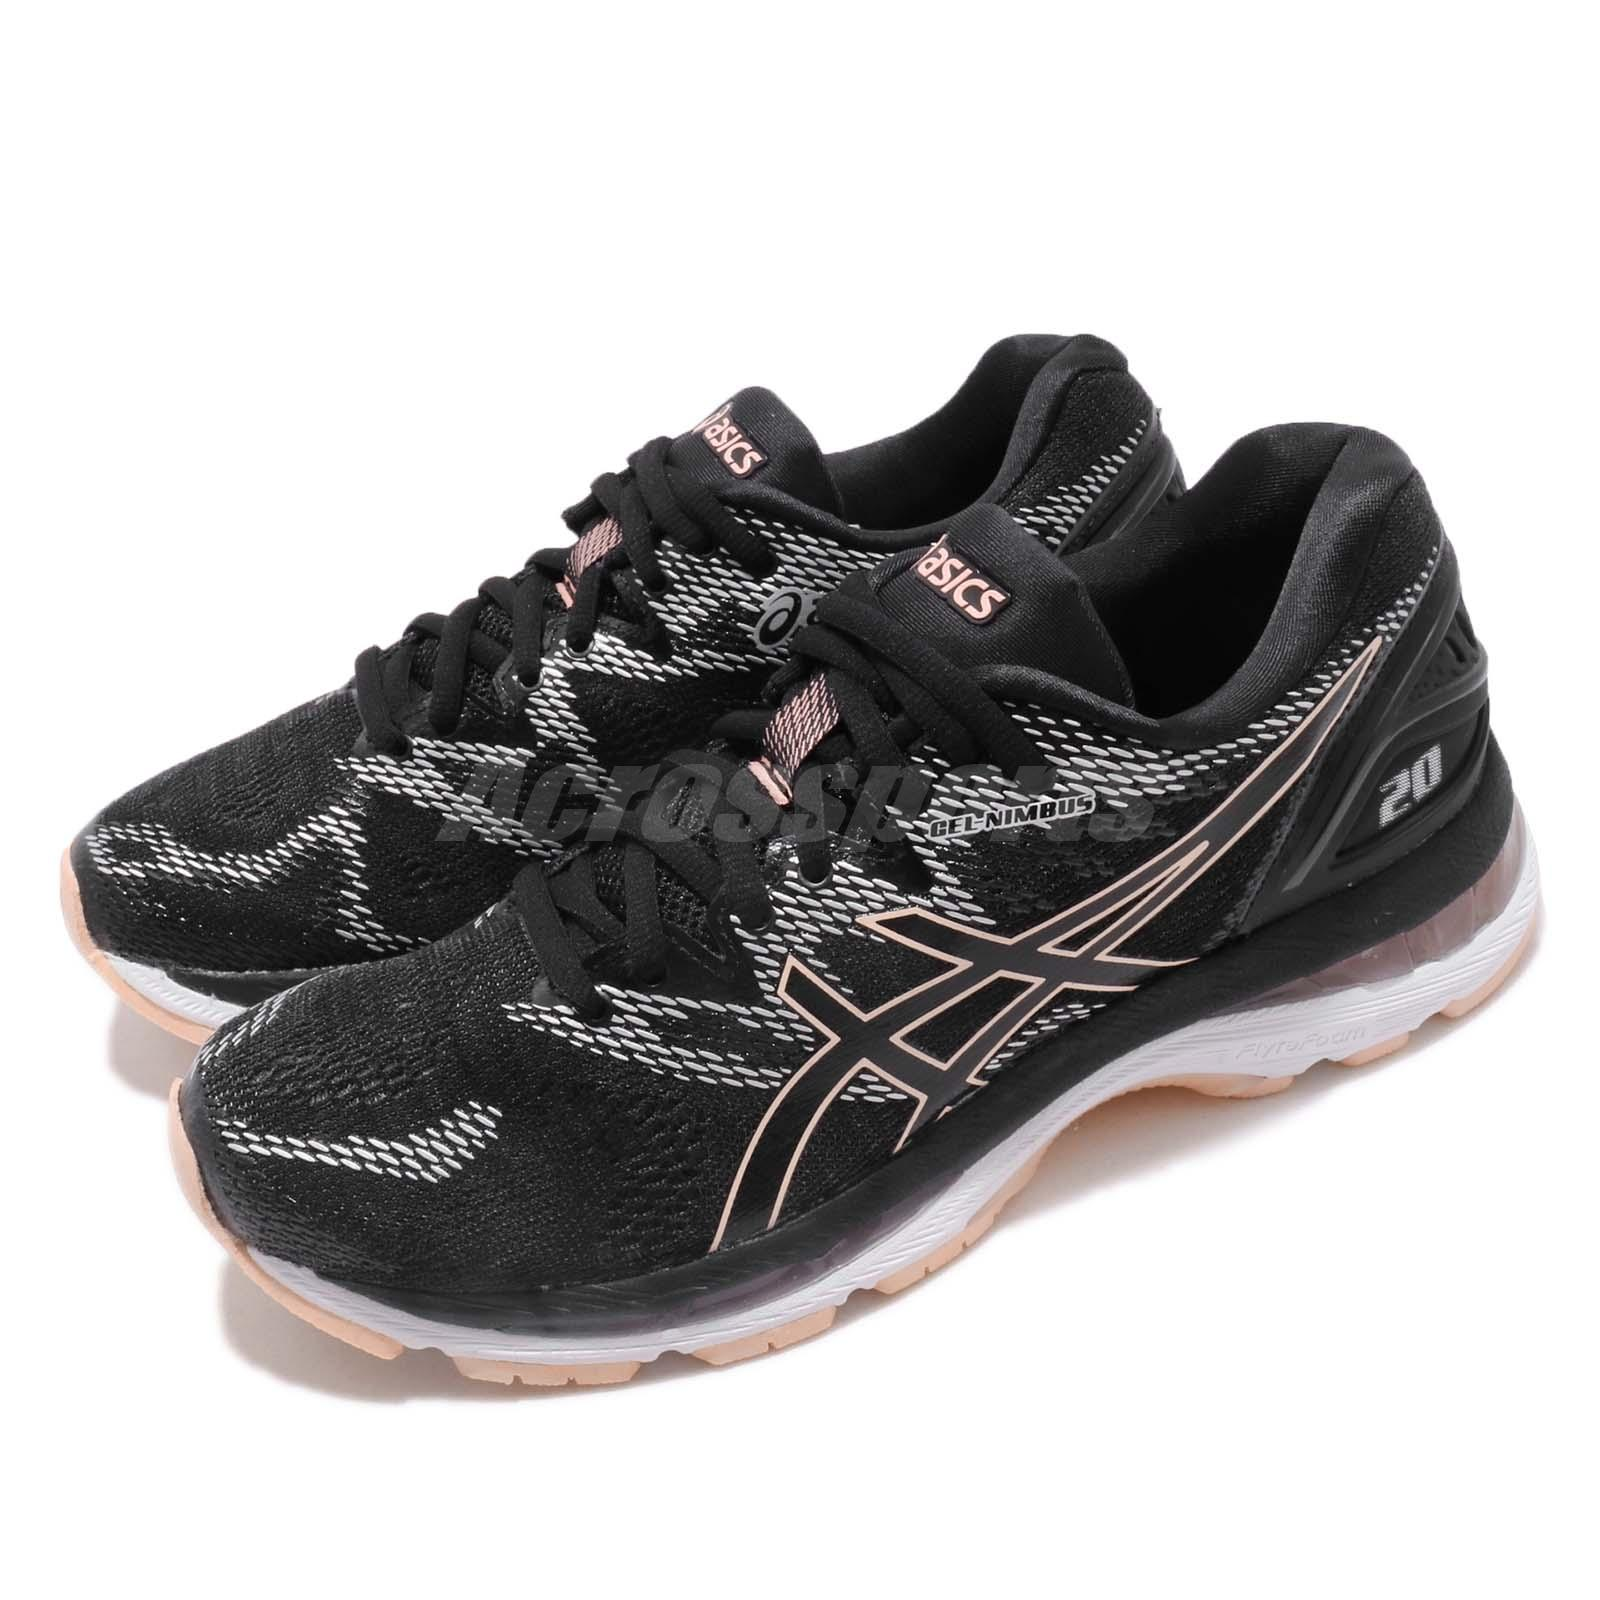 8be5e94be9793 Details about Asics Gel-Nimbus 20 FlyteFoam Black Frosted Rose Womens  Running Shoes T850N-001